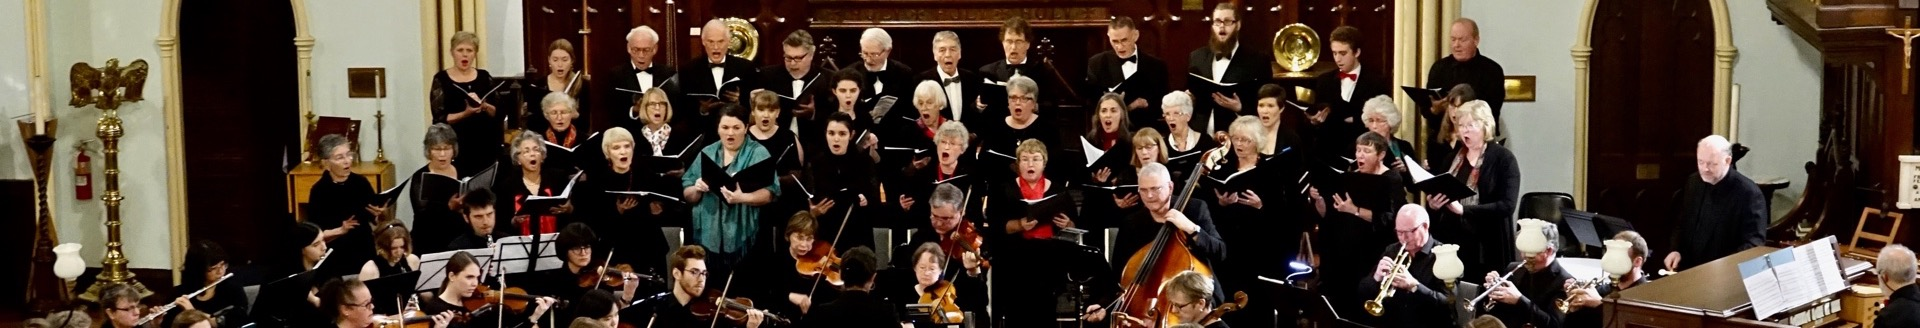 Panorama image of the Brockville Community Choir in concert.